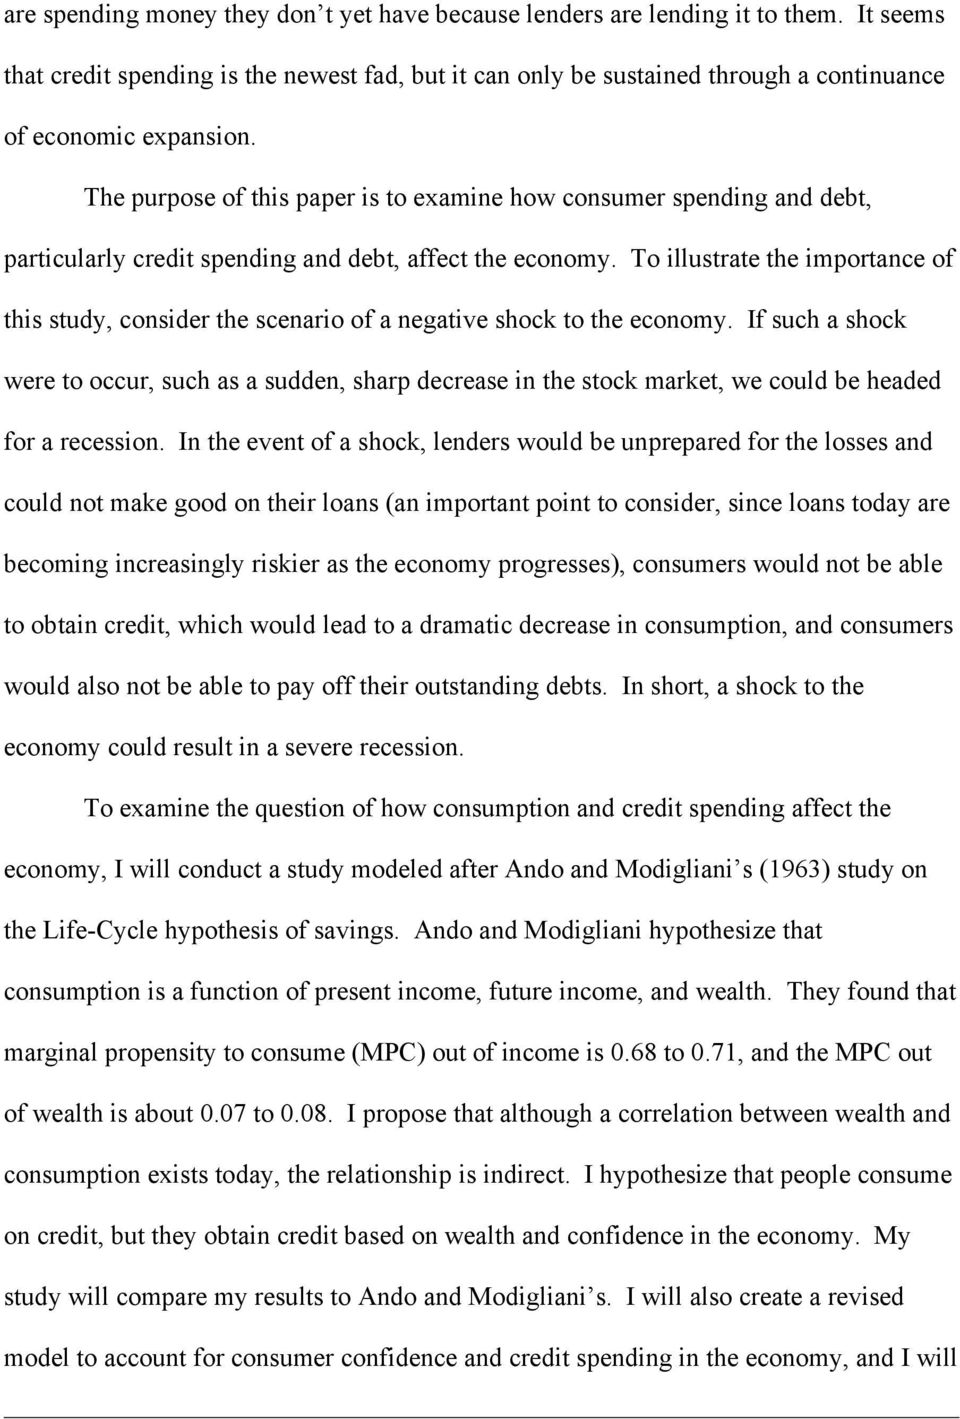 The purpose of this paper is to examine how consumer spending and debt, particularly credit spending and debt, affect the economy.